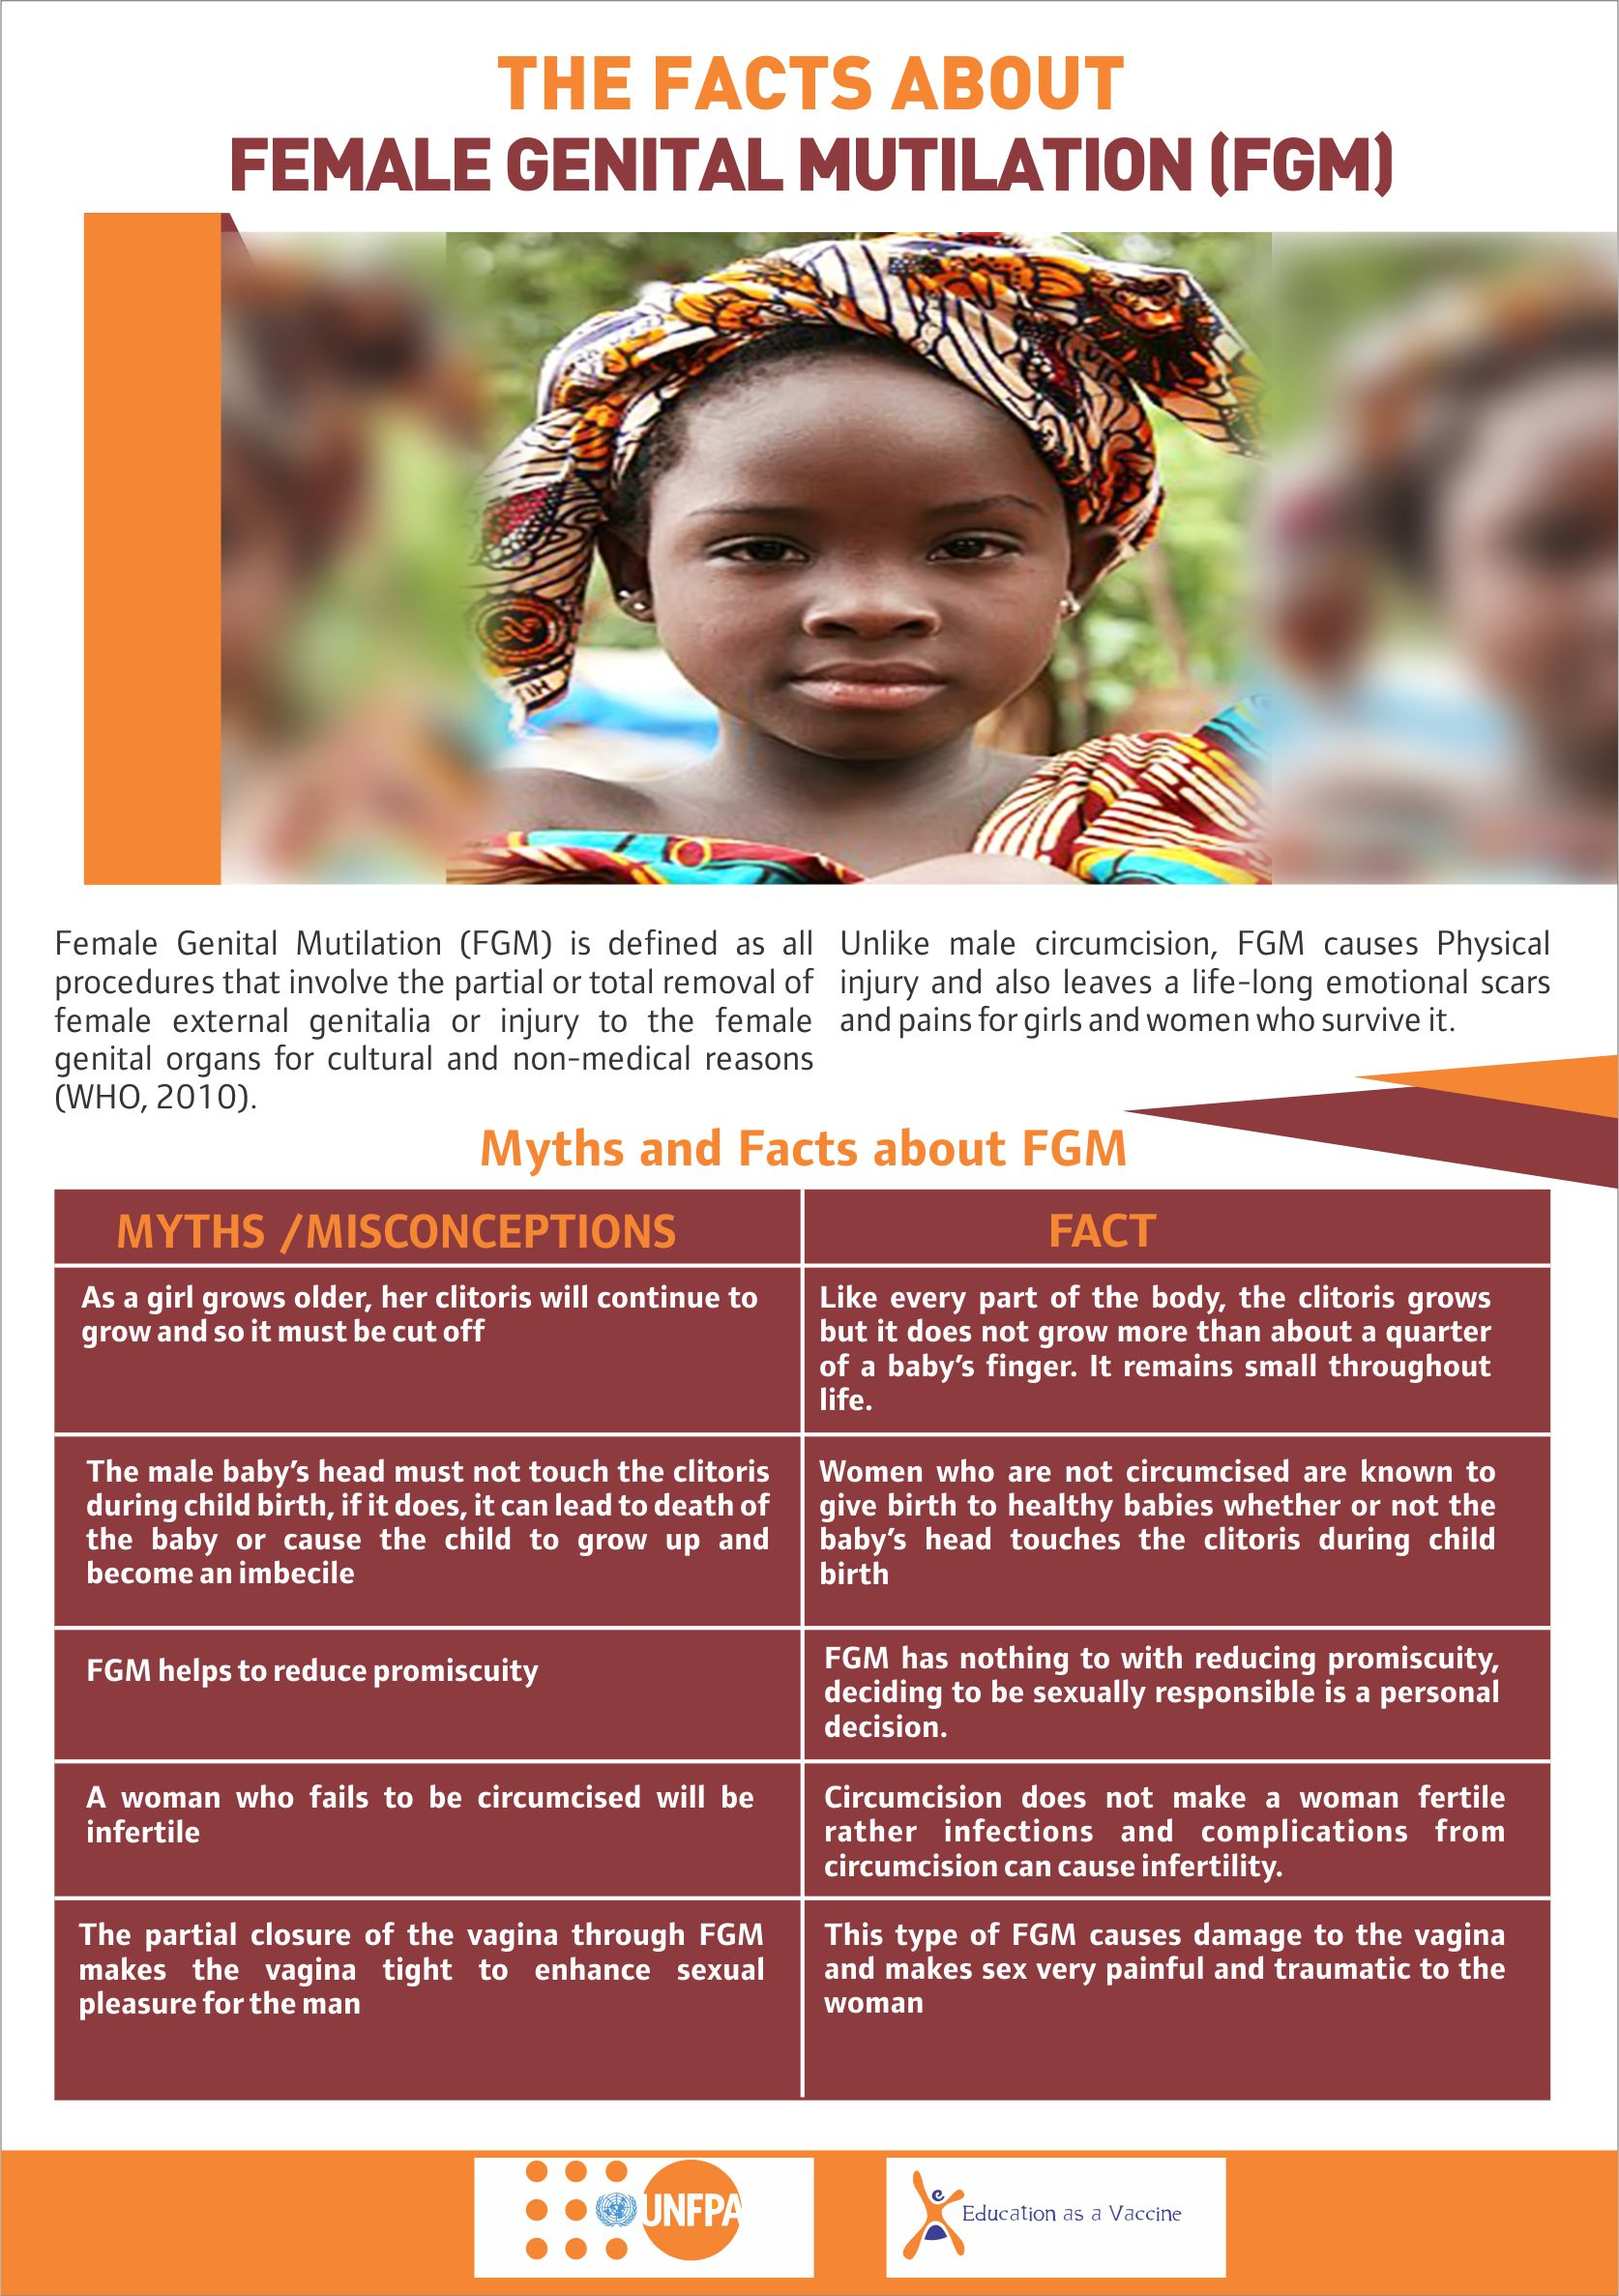 The Facts About Female Genital Mutilation (FGM)